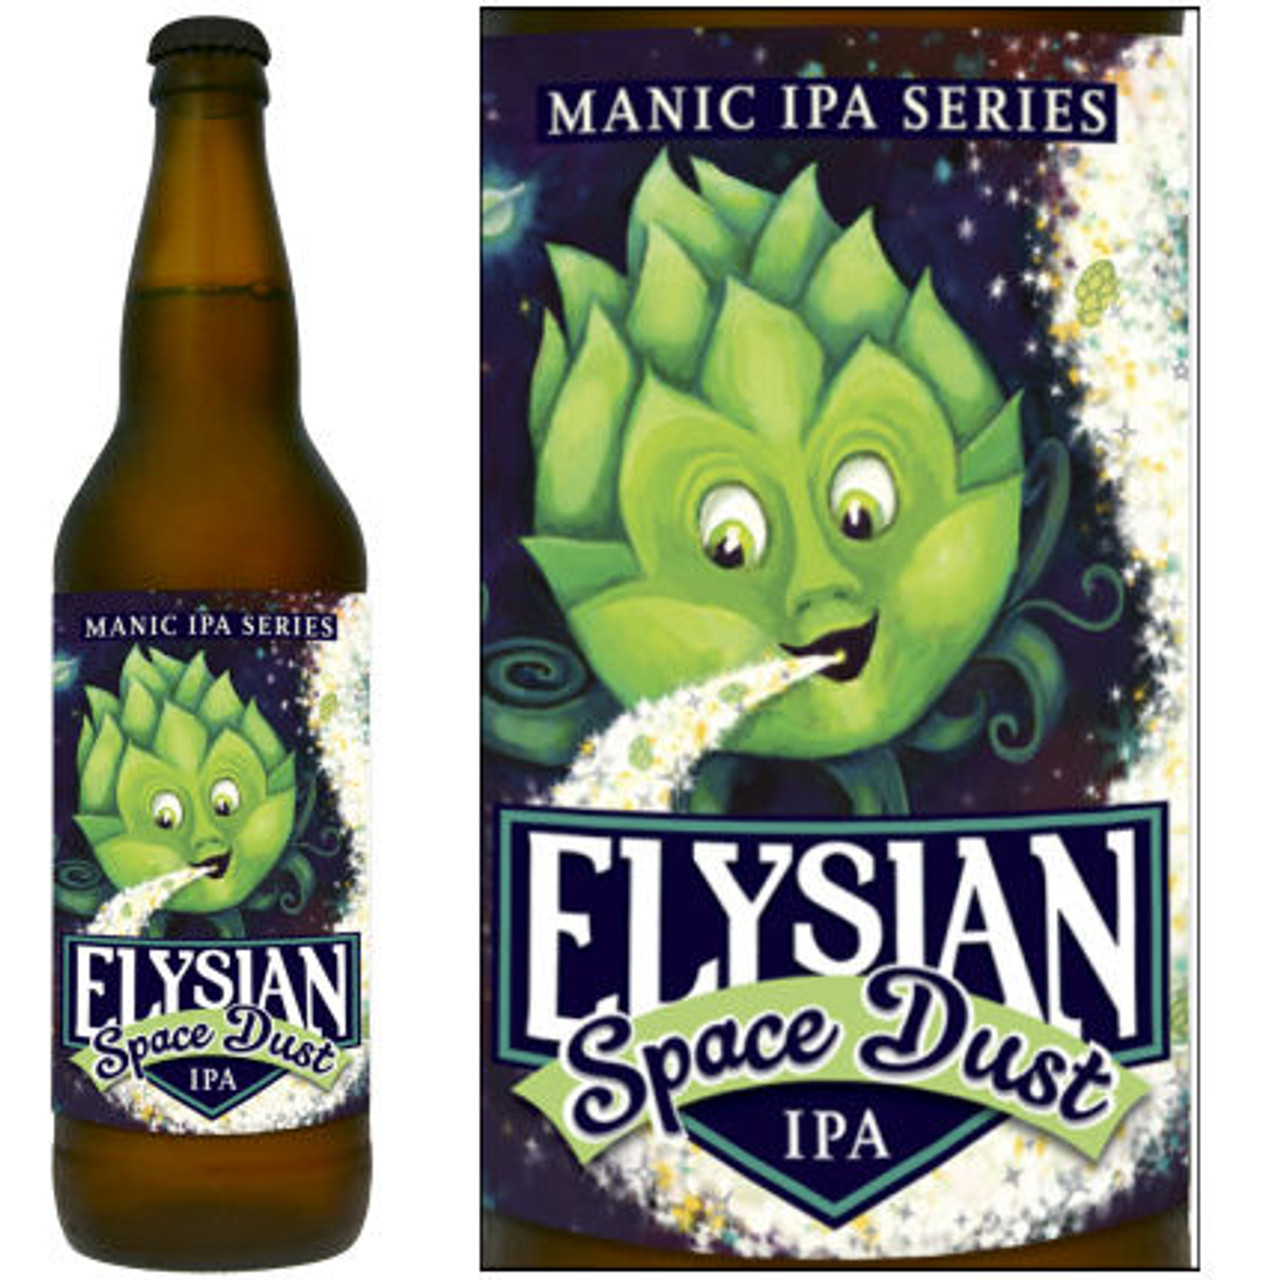 Elysian description